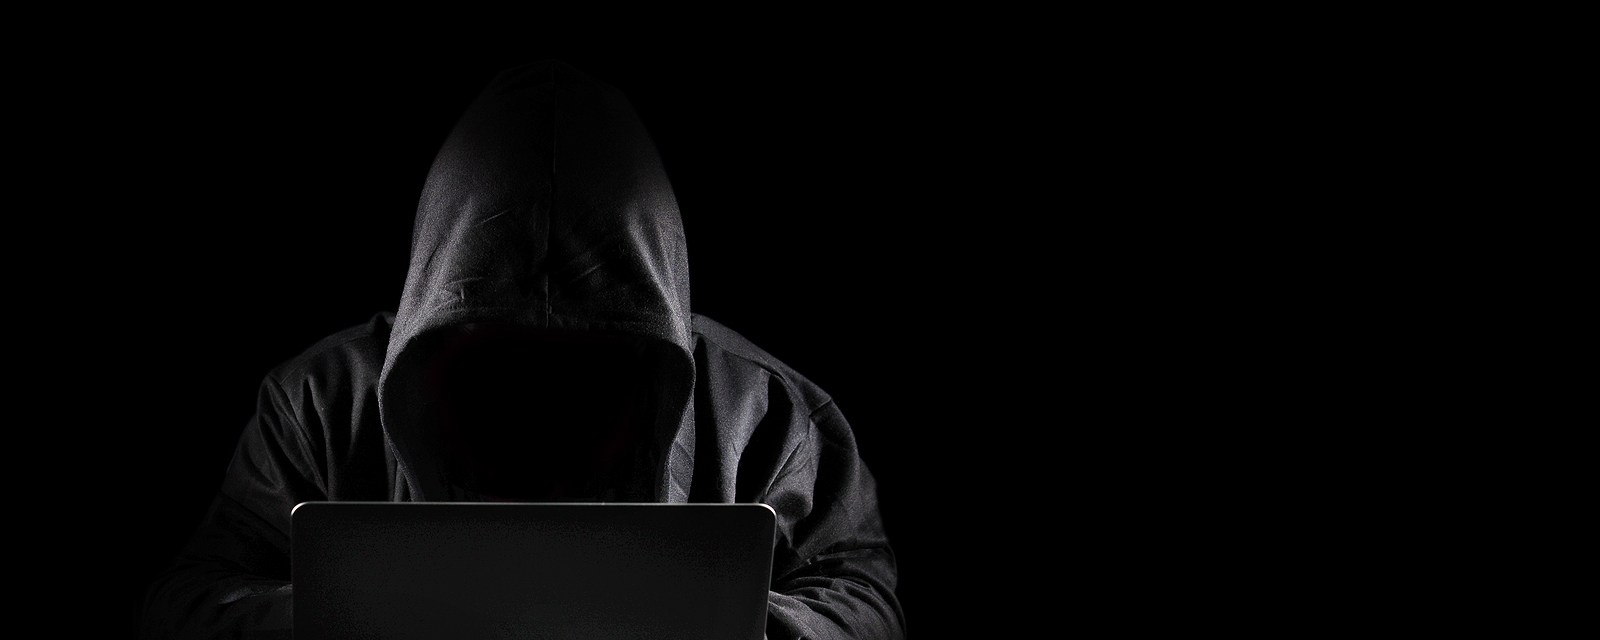 Top tactics used in critical attacks against corporate endpoints